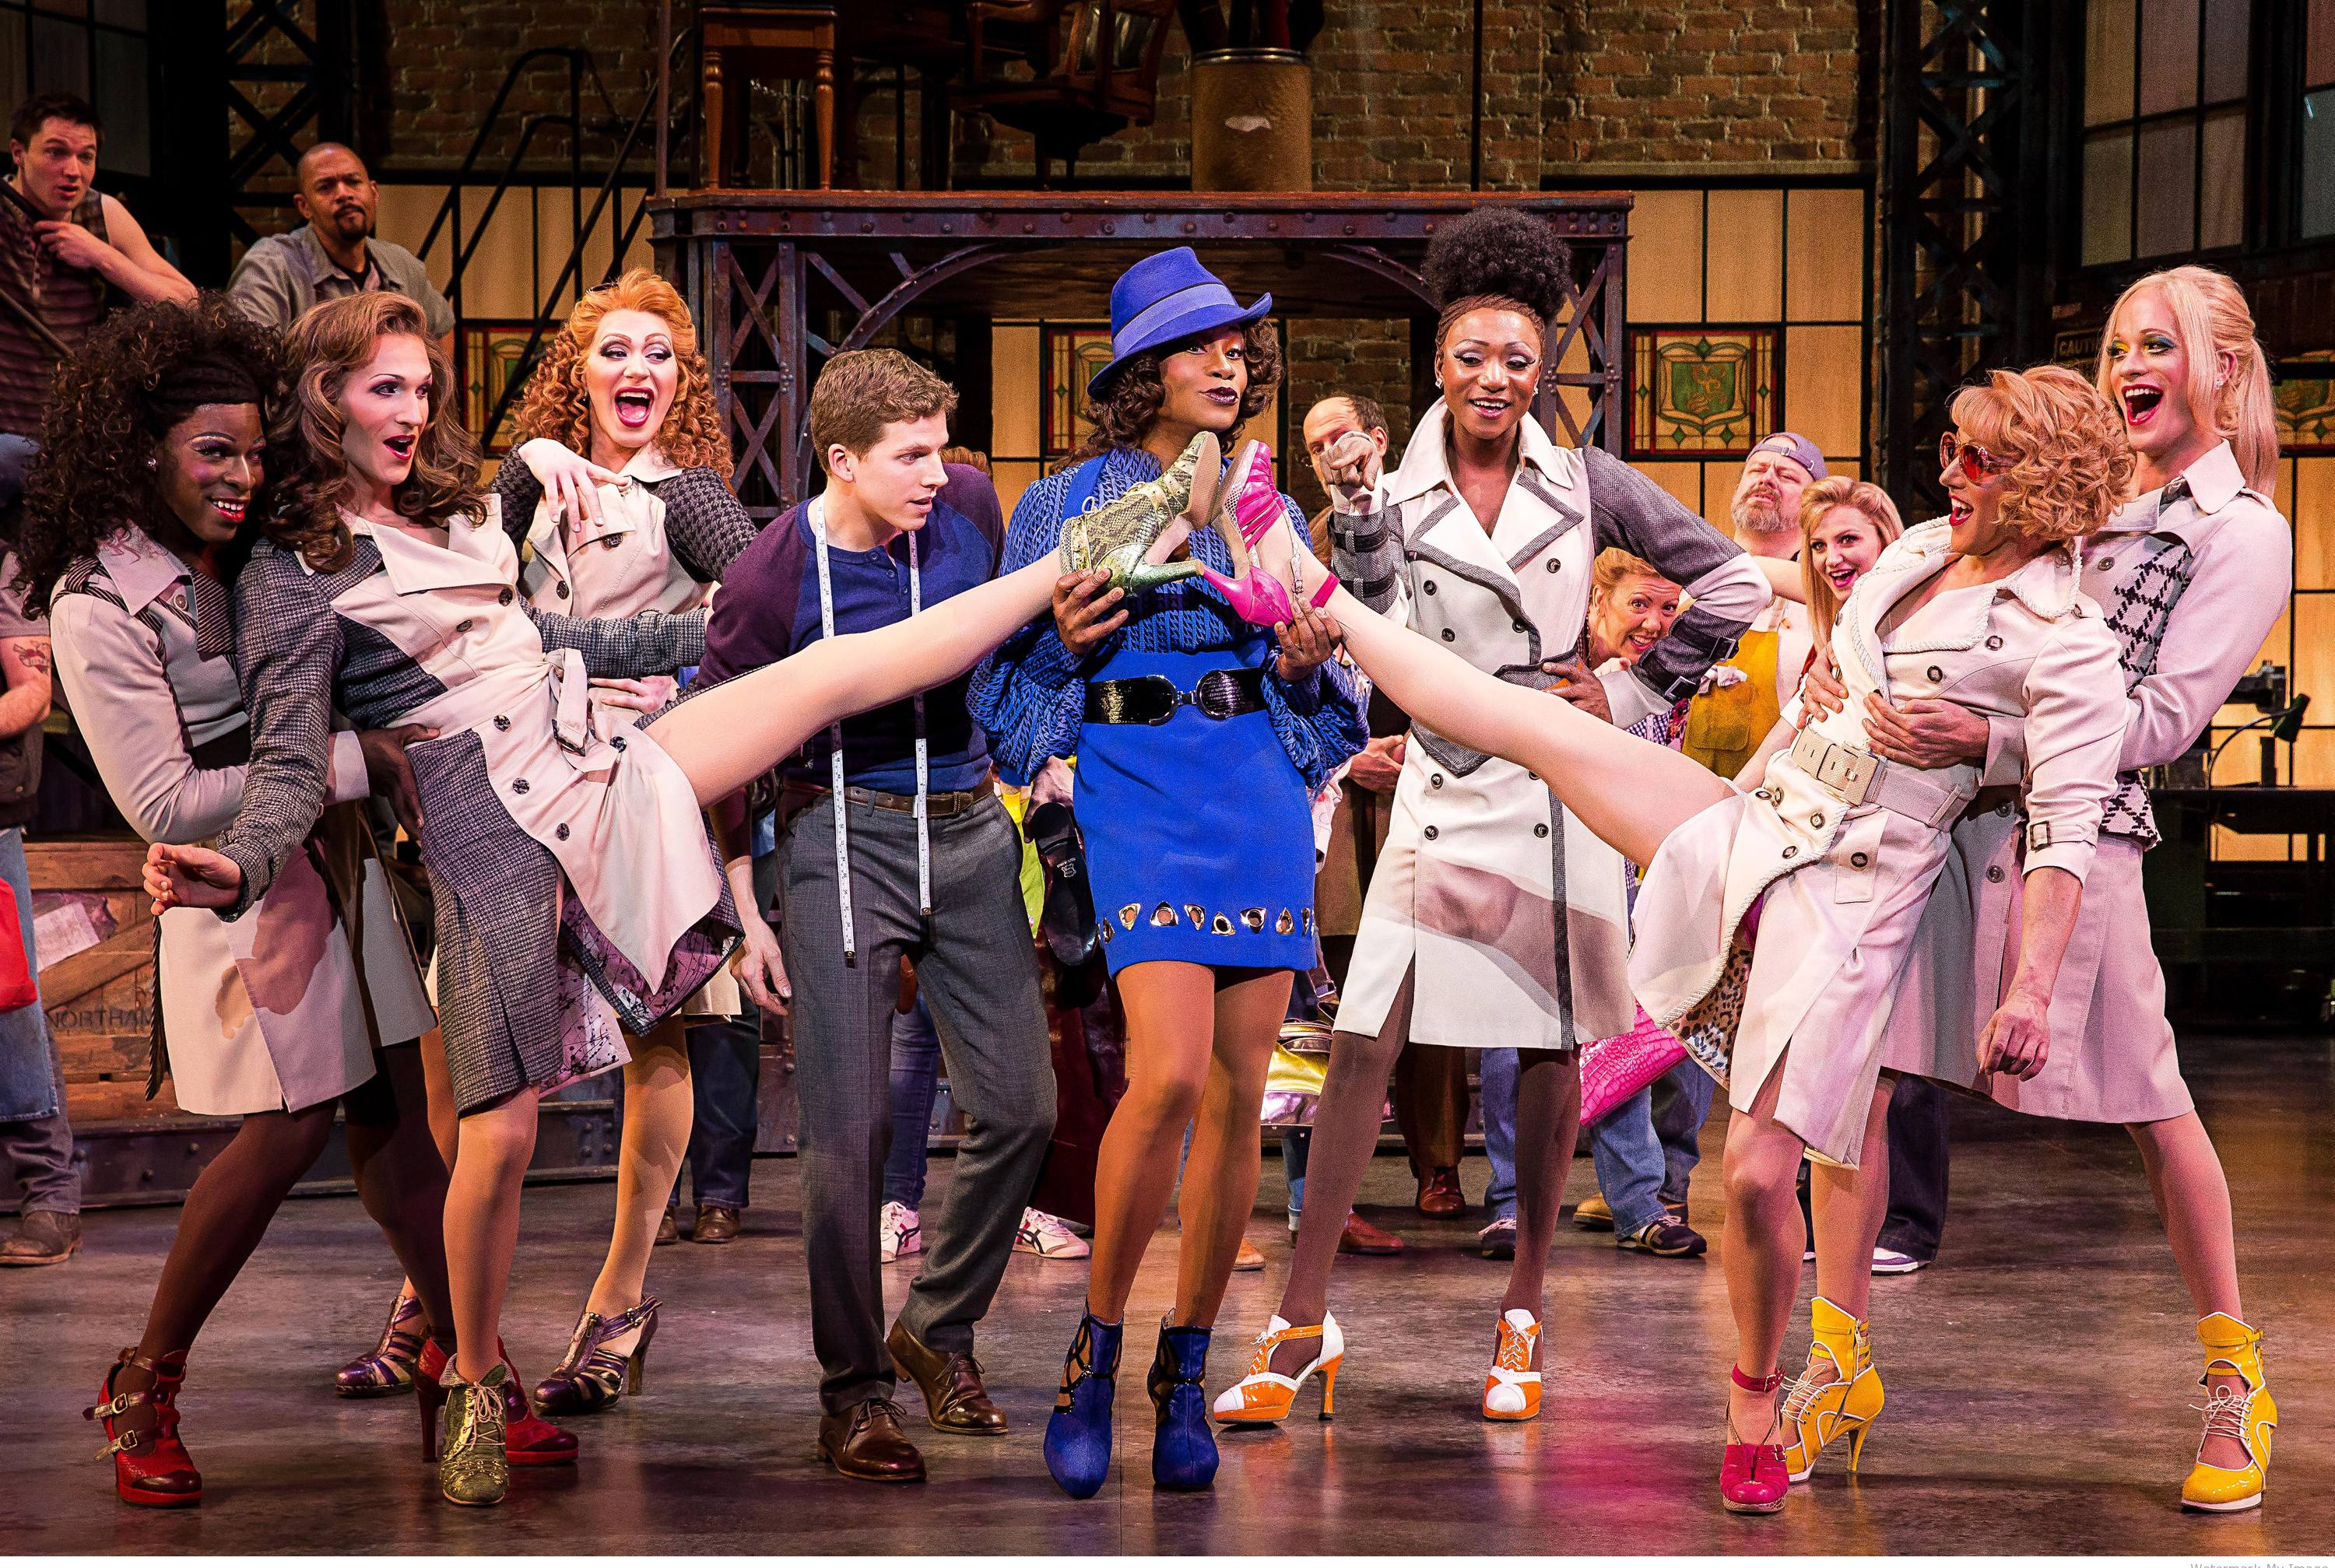 Broadway kinky boots vicente wolf for The brodway